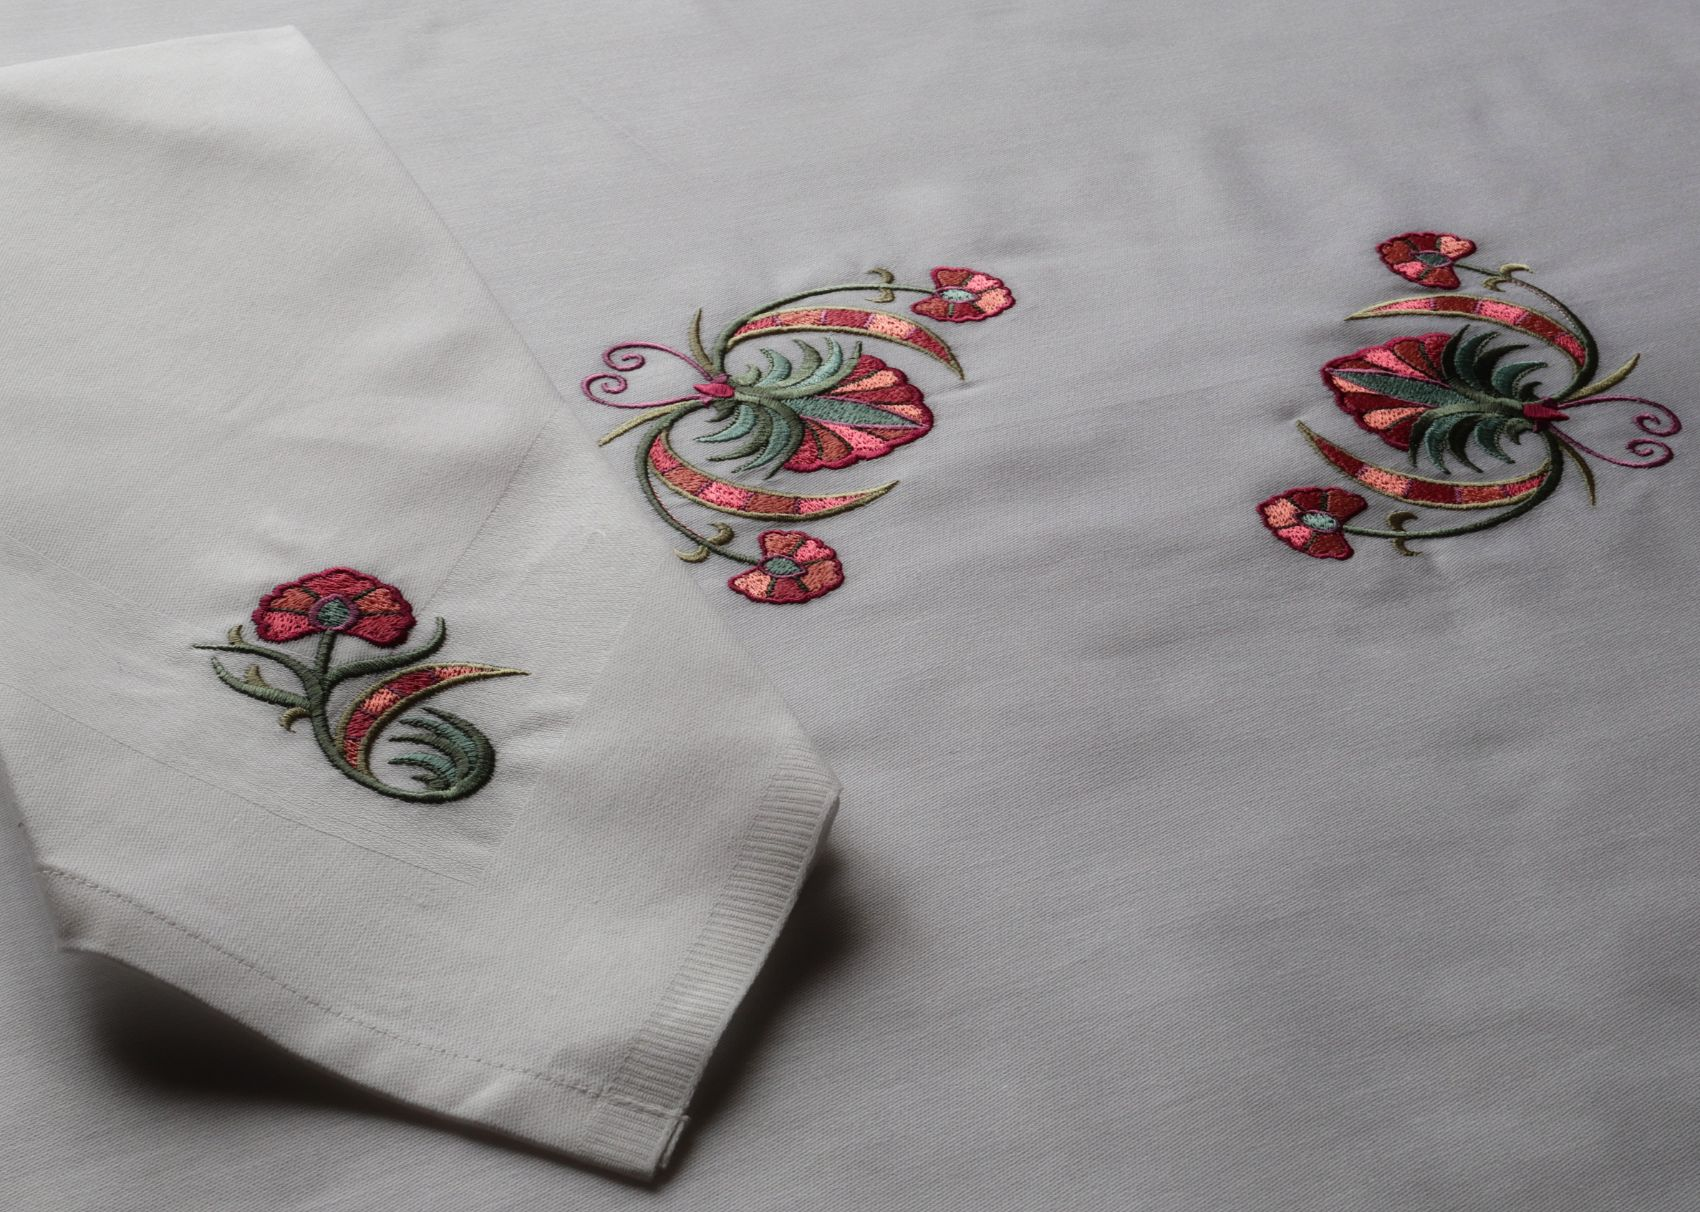 Seasons themed tablecloths and matching napkins are made to order